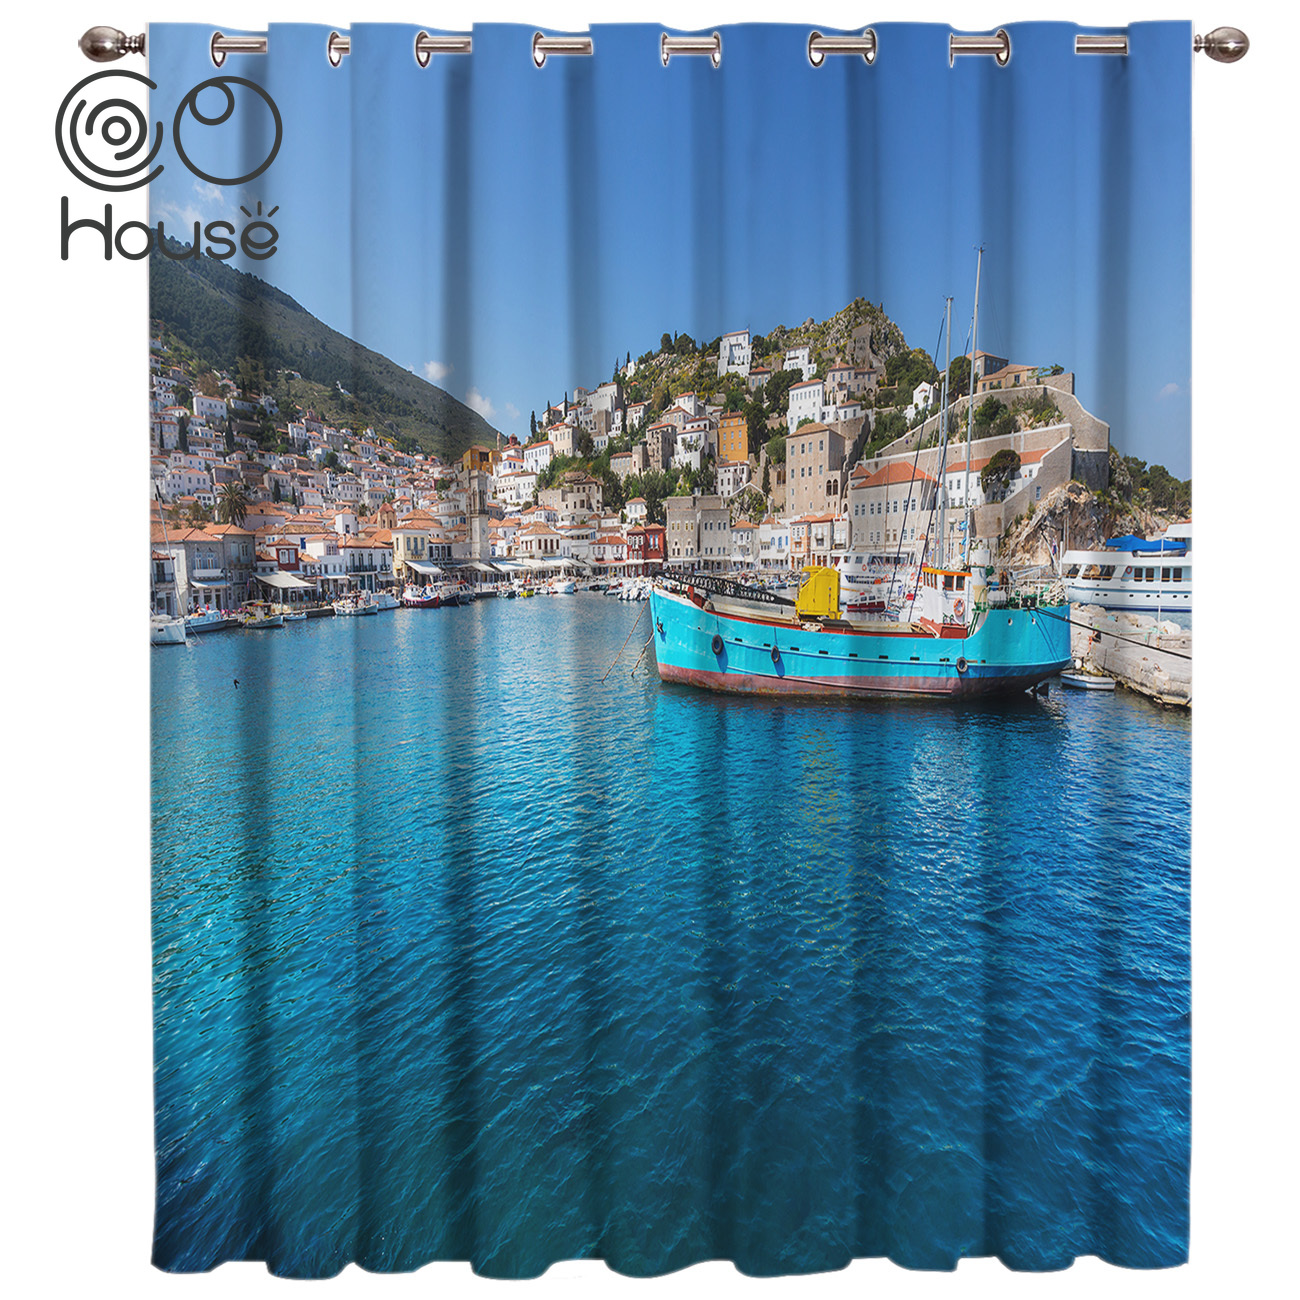 Ships Docked At The Seaside Curtains Blackout Kitchen Bedroom Fabric Indoor Decor Curtain Panels With Grommets